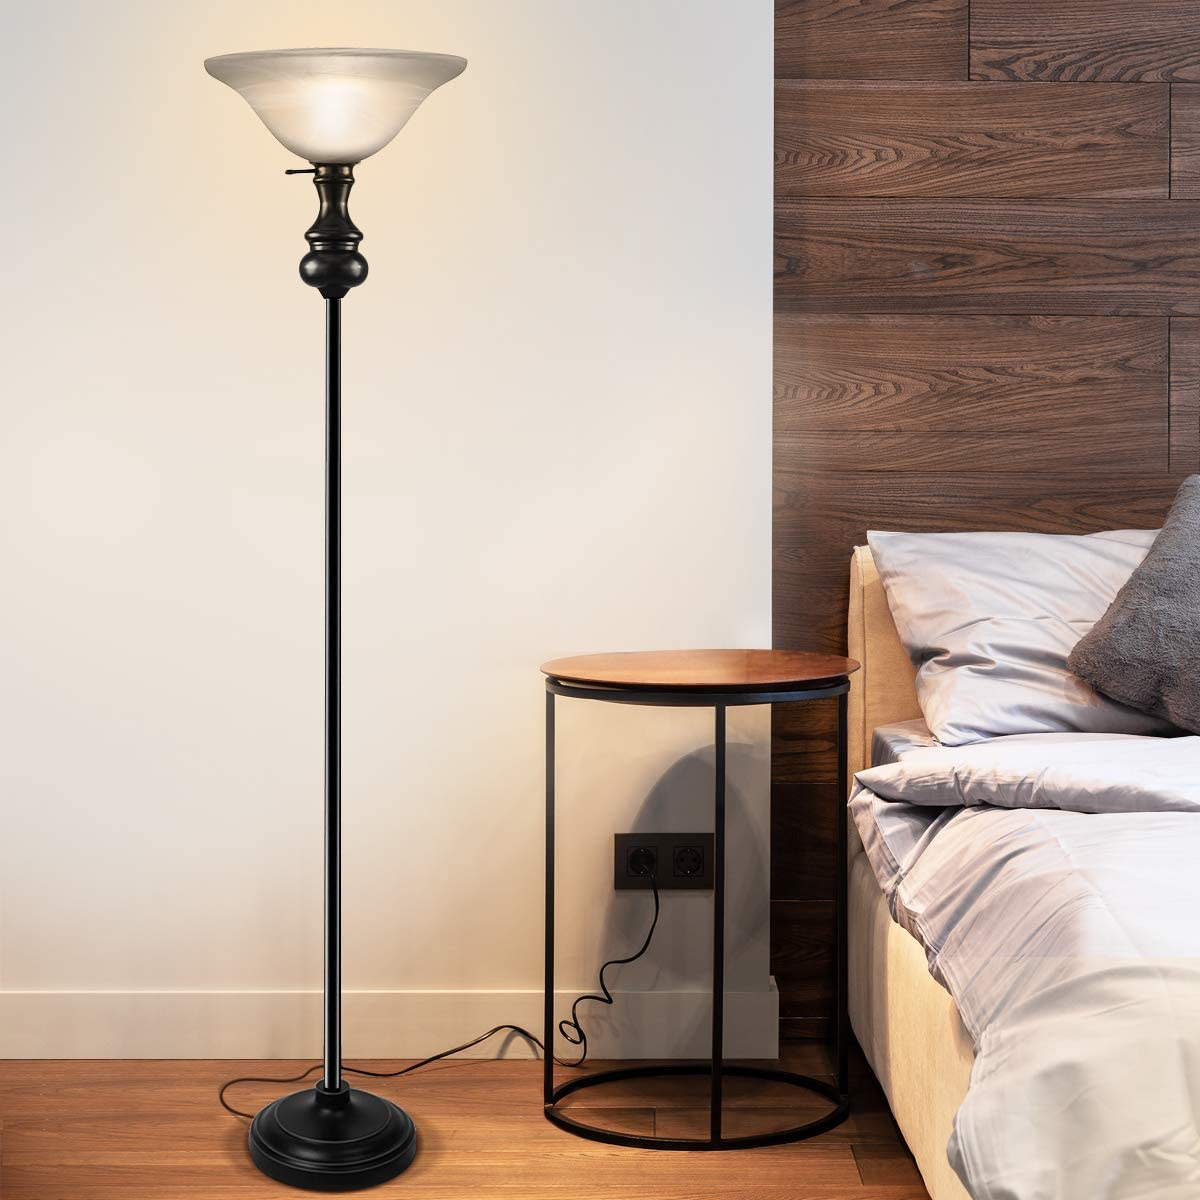 On-each-Modern-Shirley-Torchiere-Floor-Lamp-2 15 Unique Artistic Floor Lamps to Light Your Bedroom